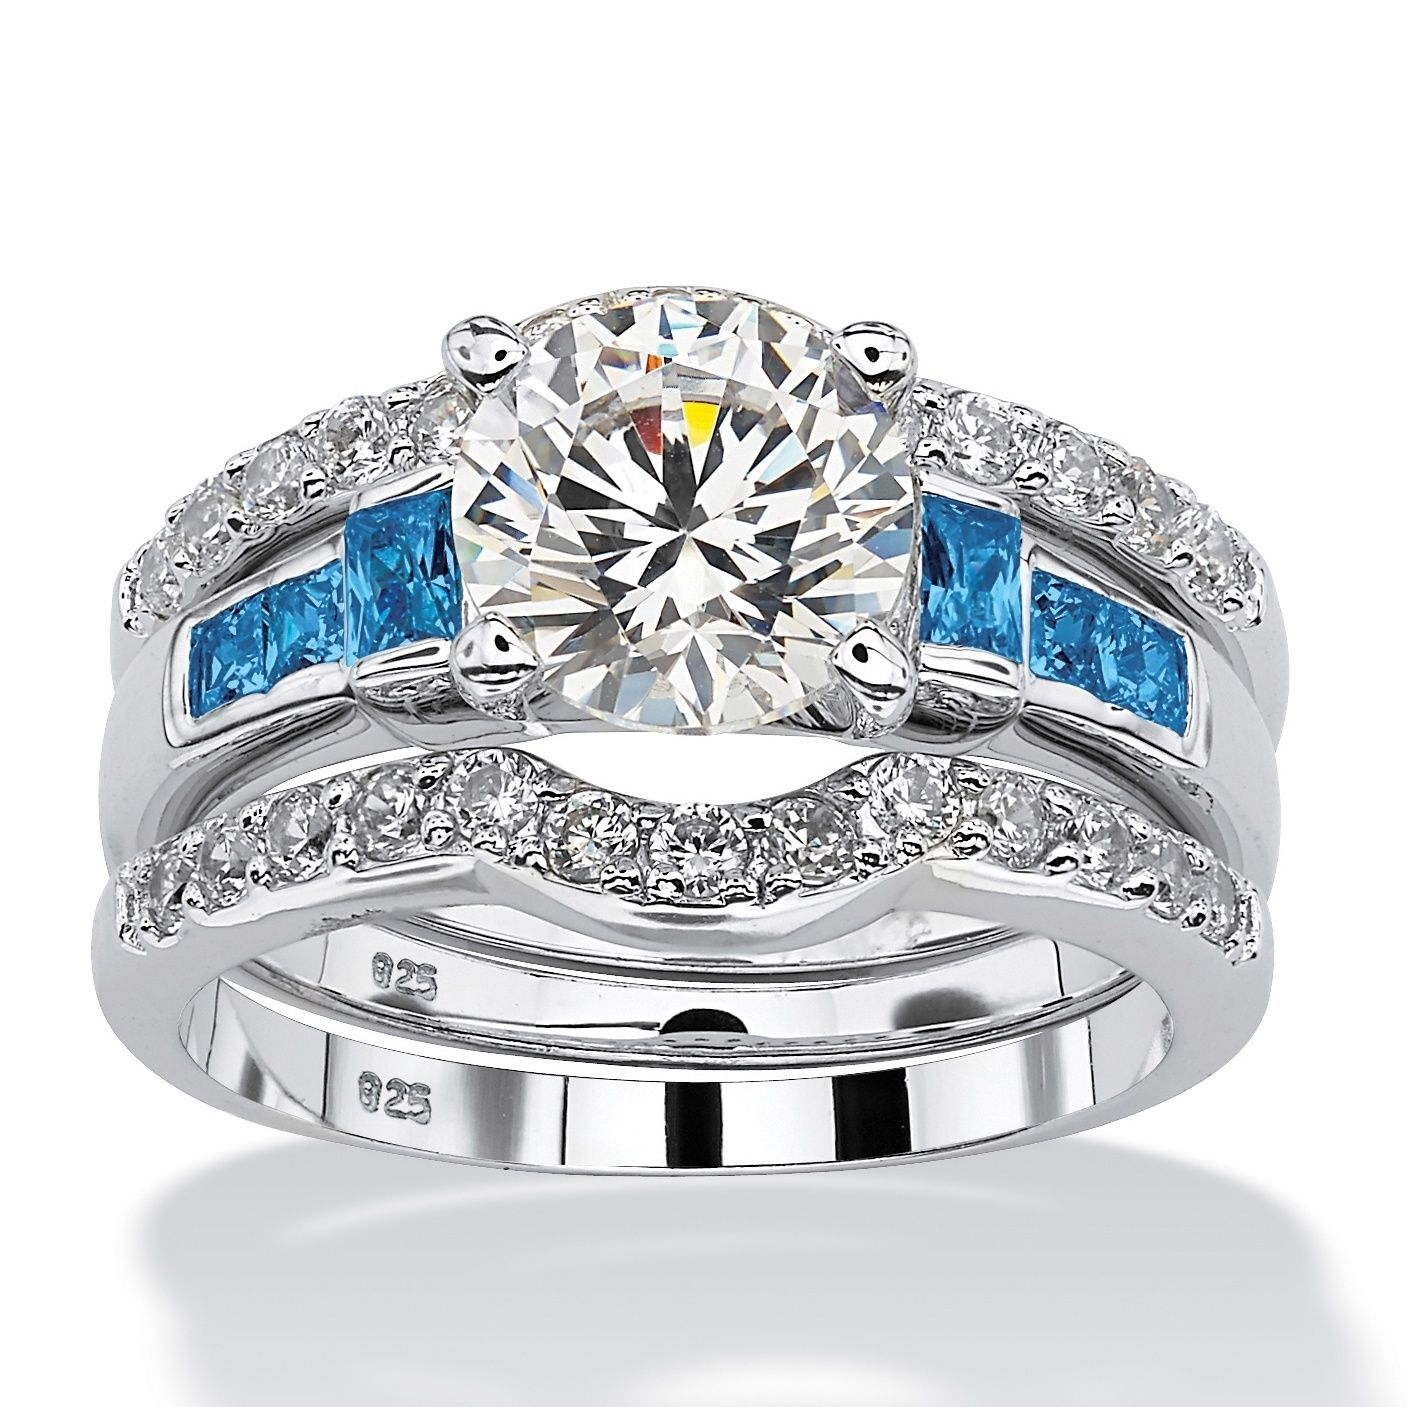 Platinum over Sterling Silver Cubic Zirconia and Sapphire